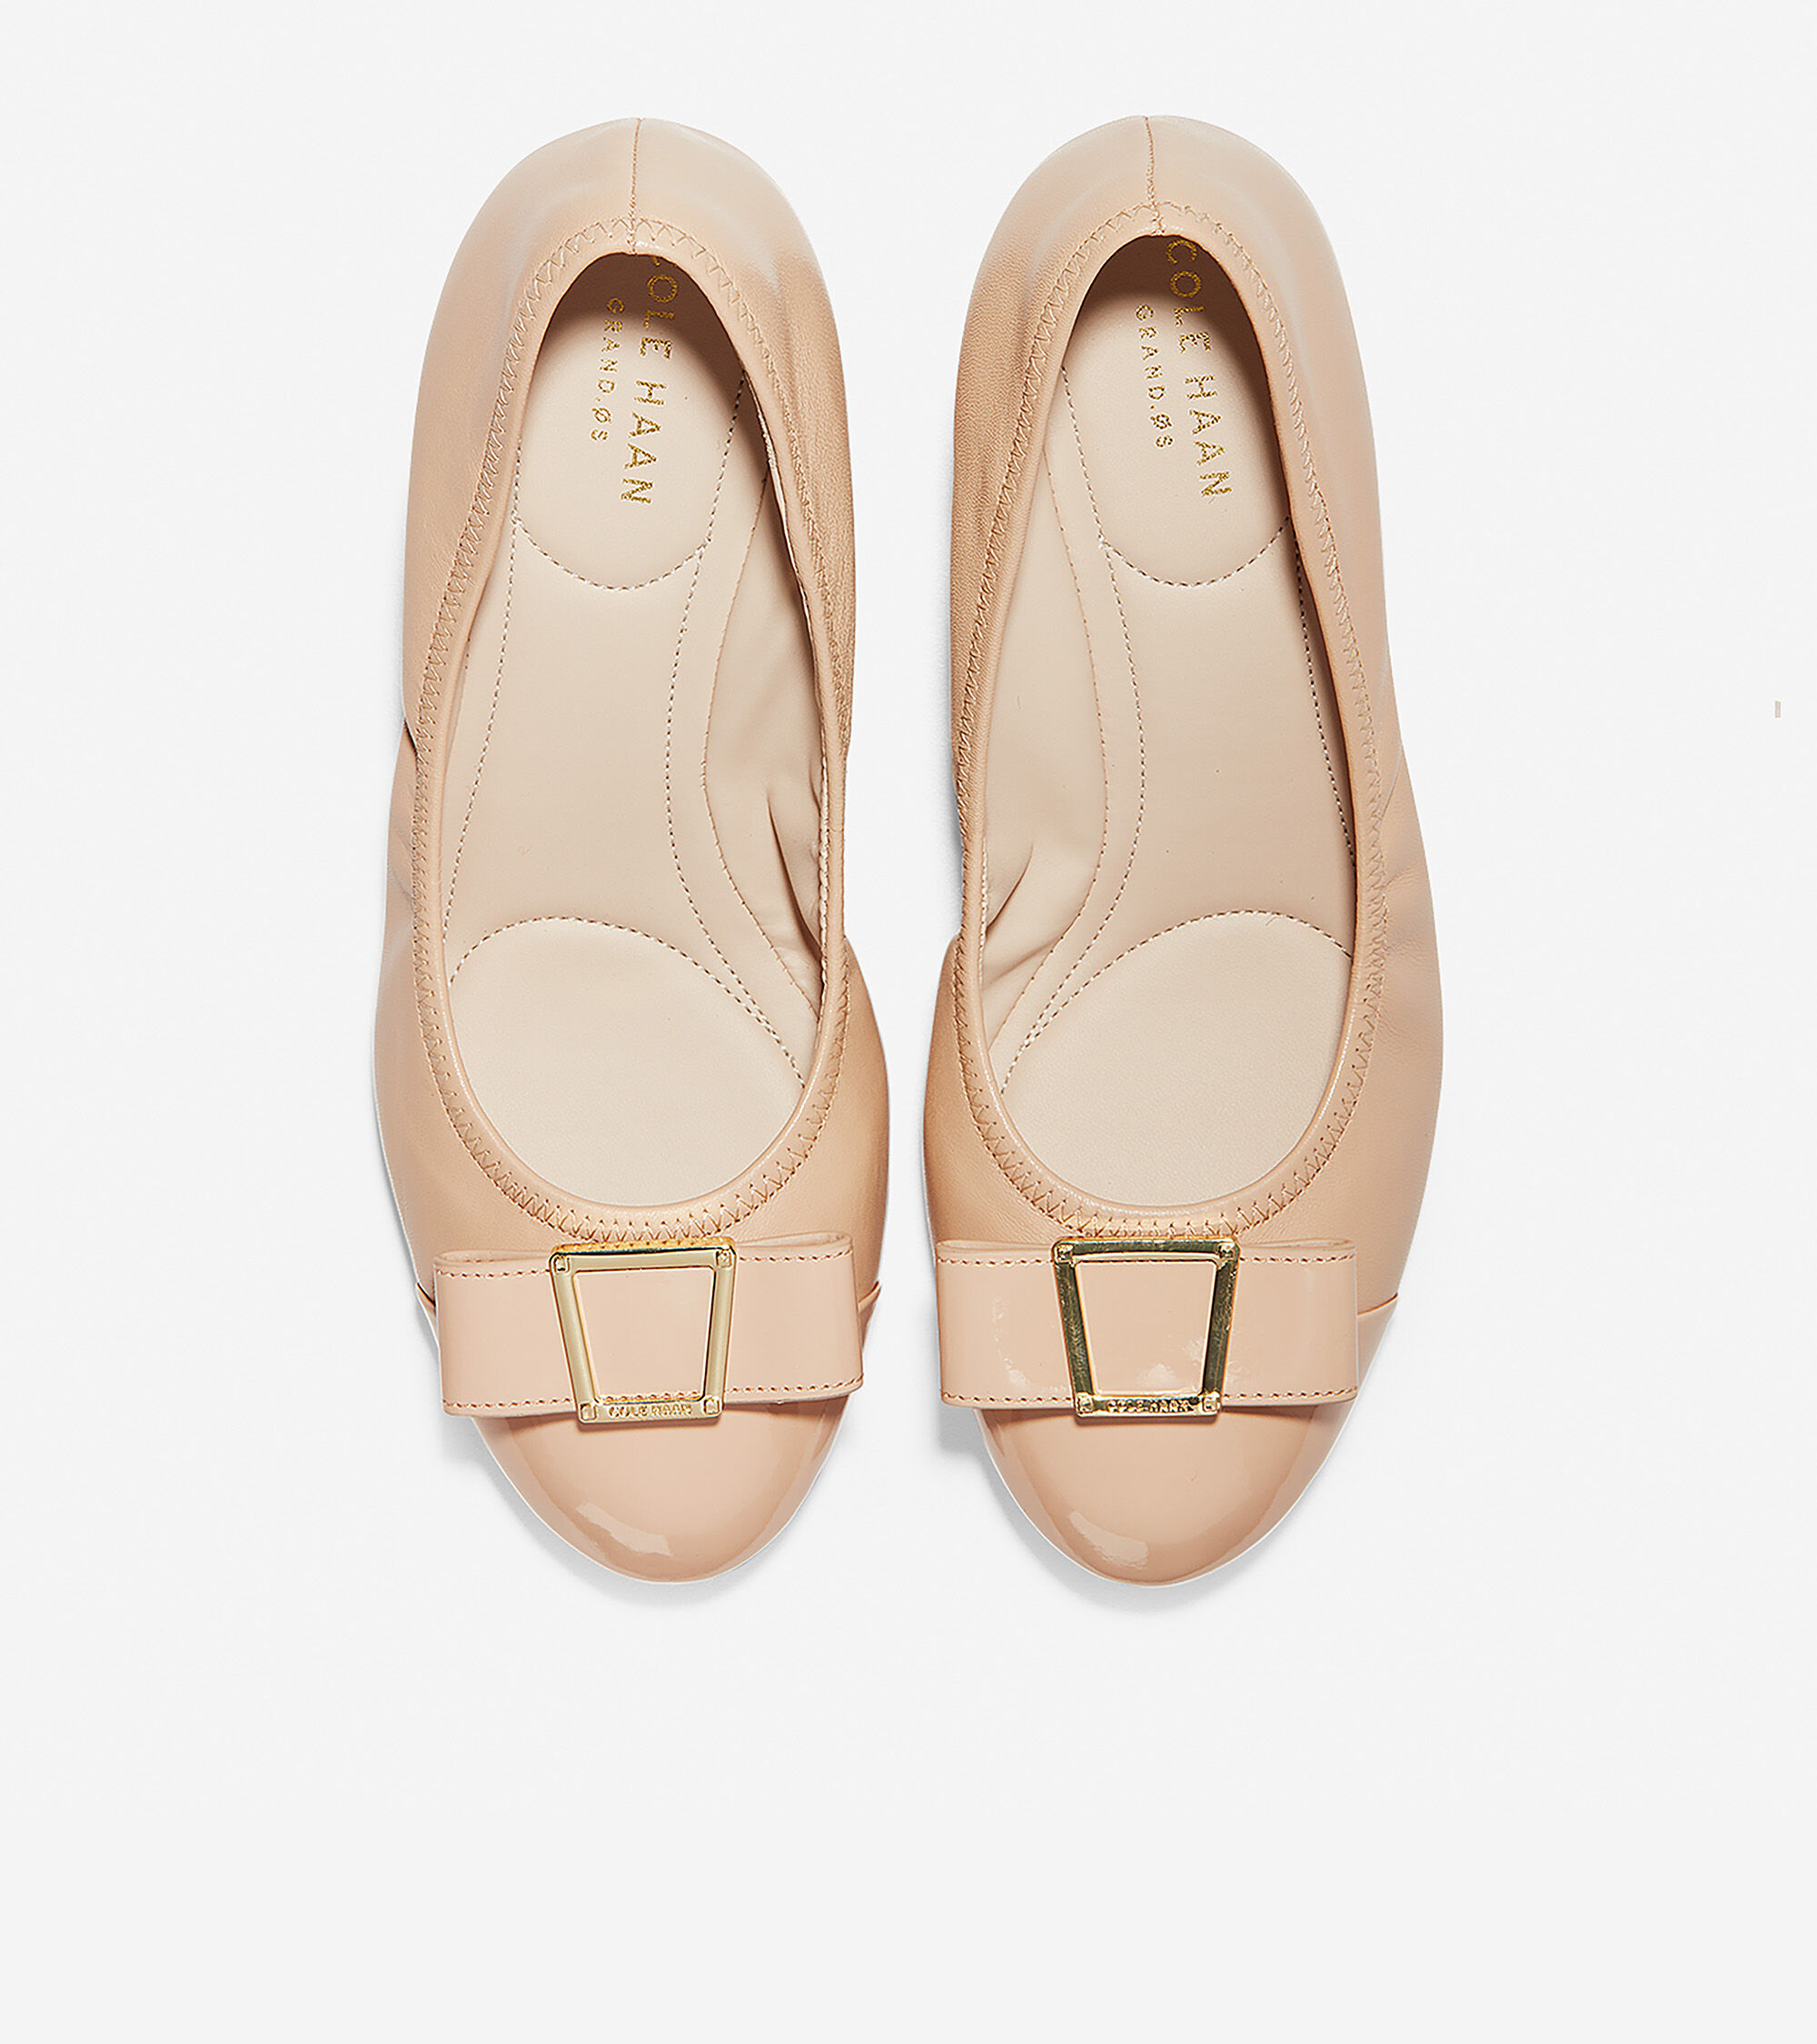 58b6597a8e Women's Emory Bow Wedges 40MM in Nude | Cole Haan